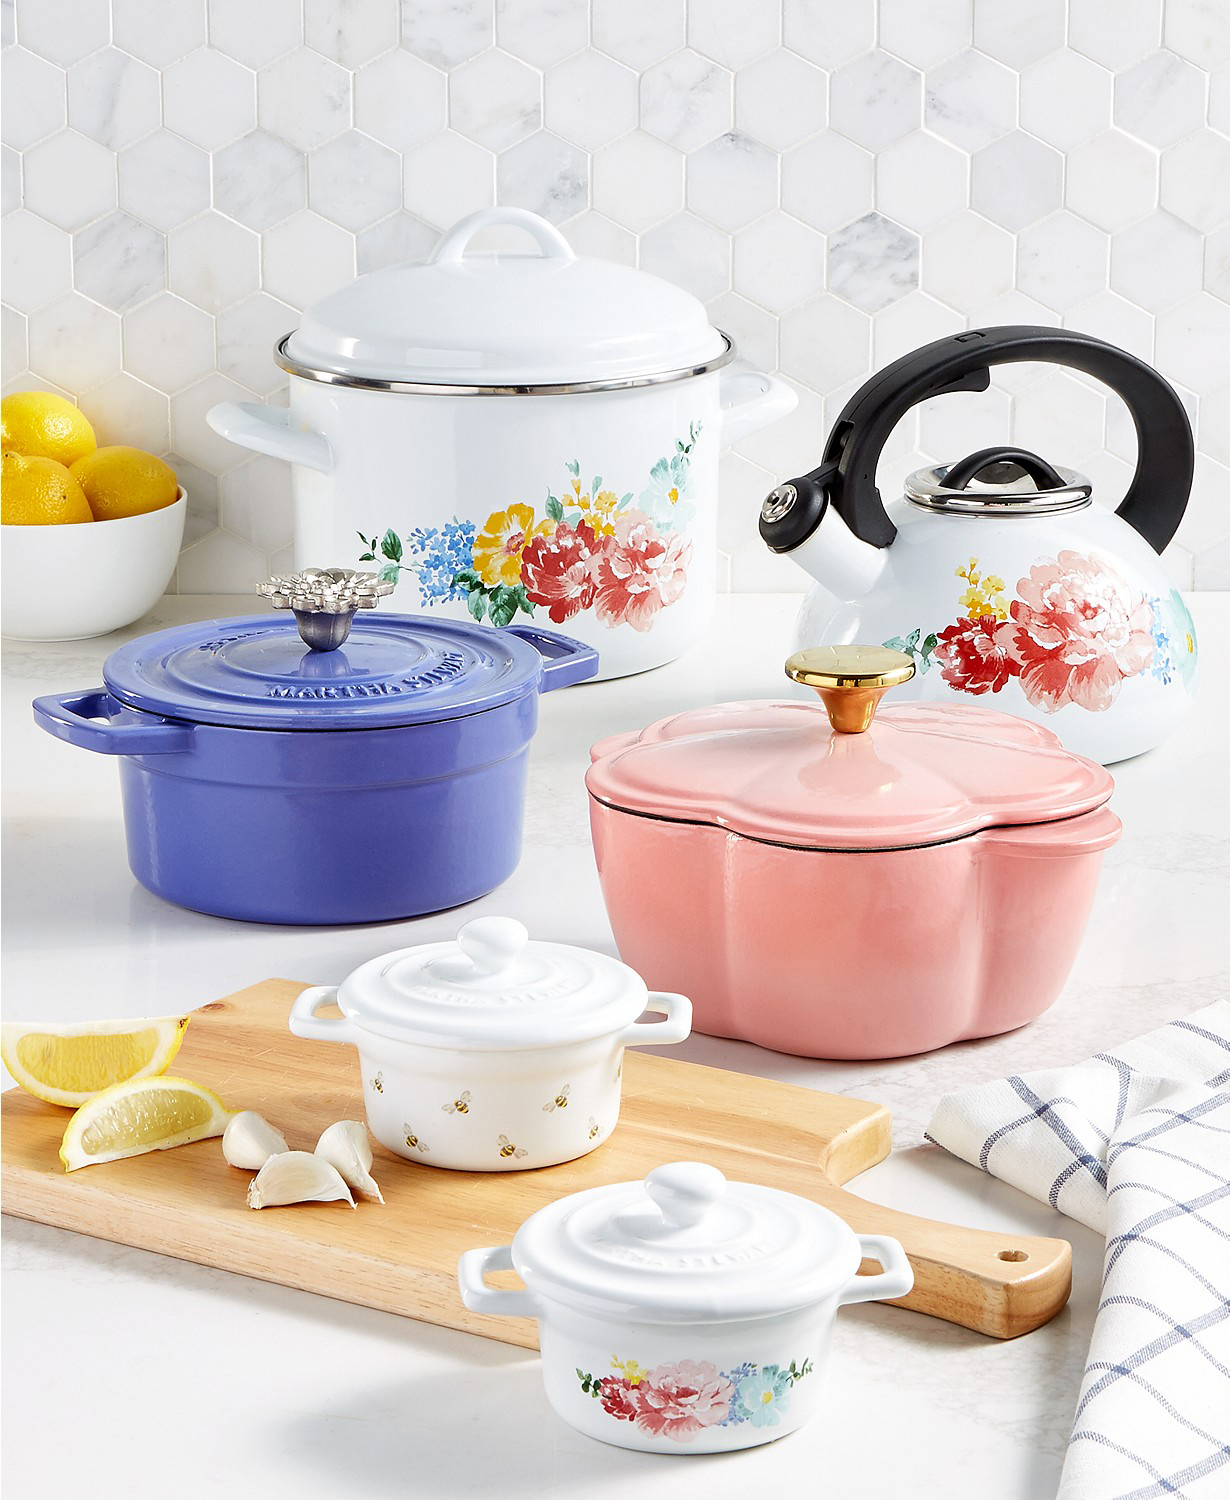 martha stewart collection floral enameled cast iron cookware